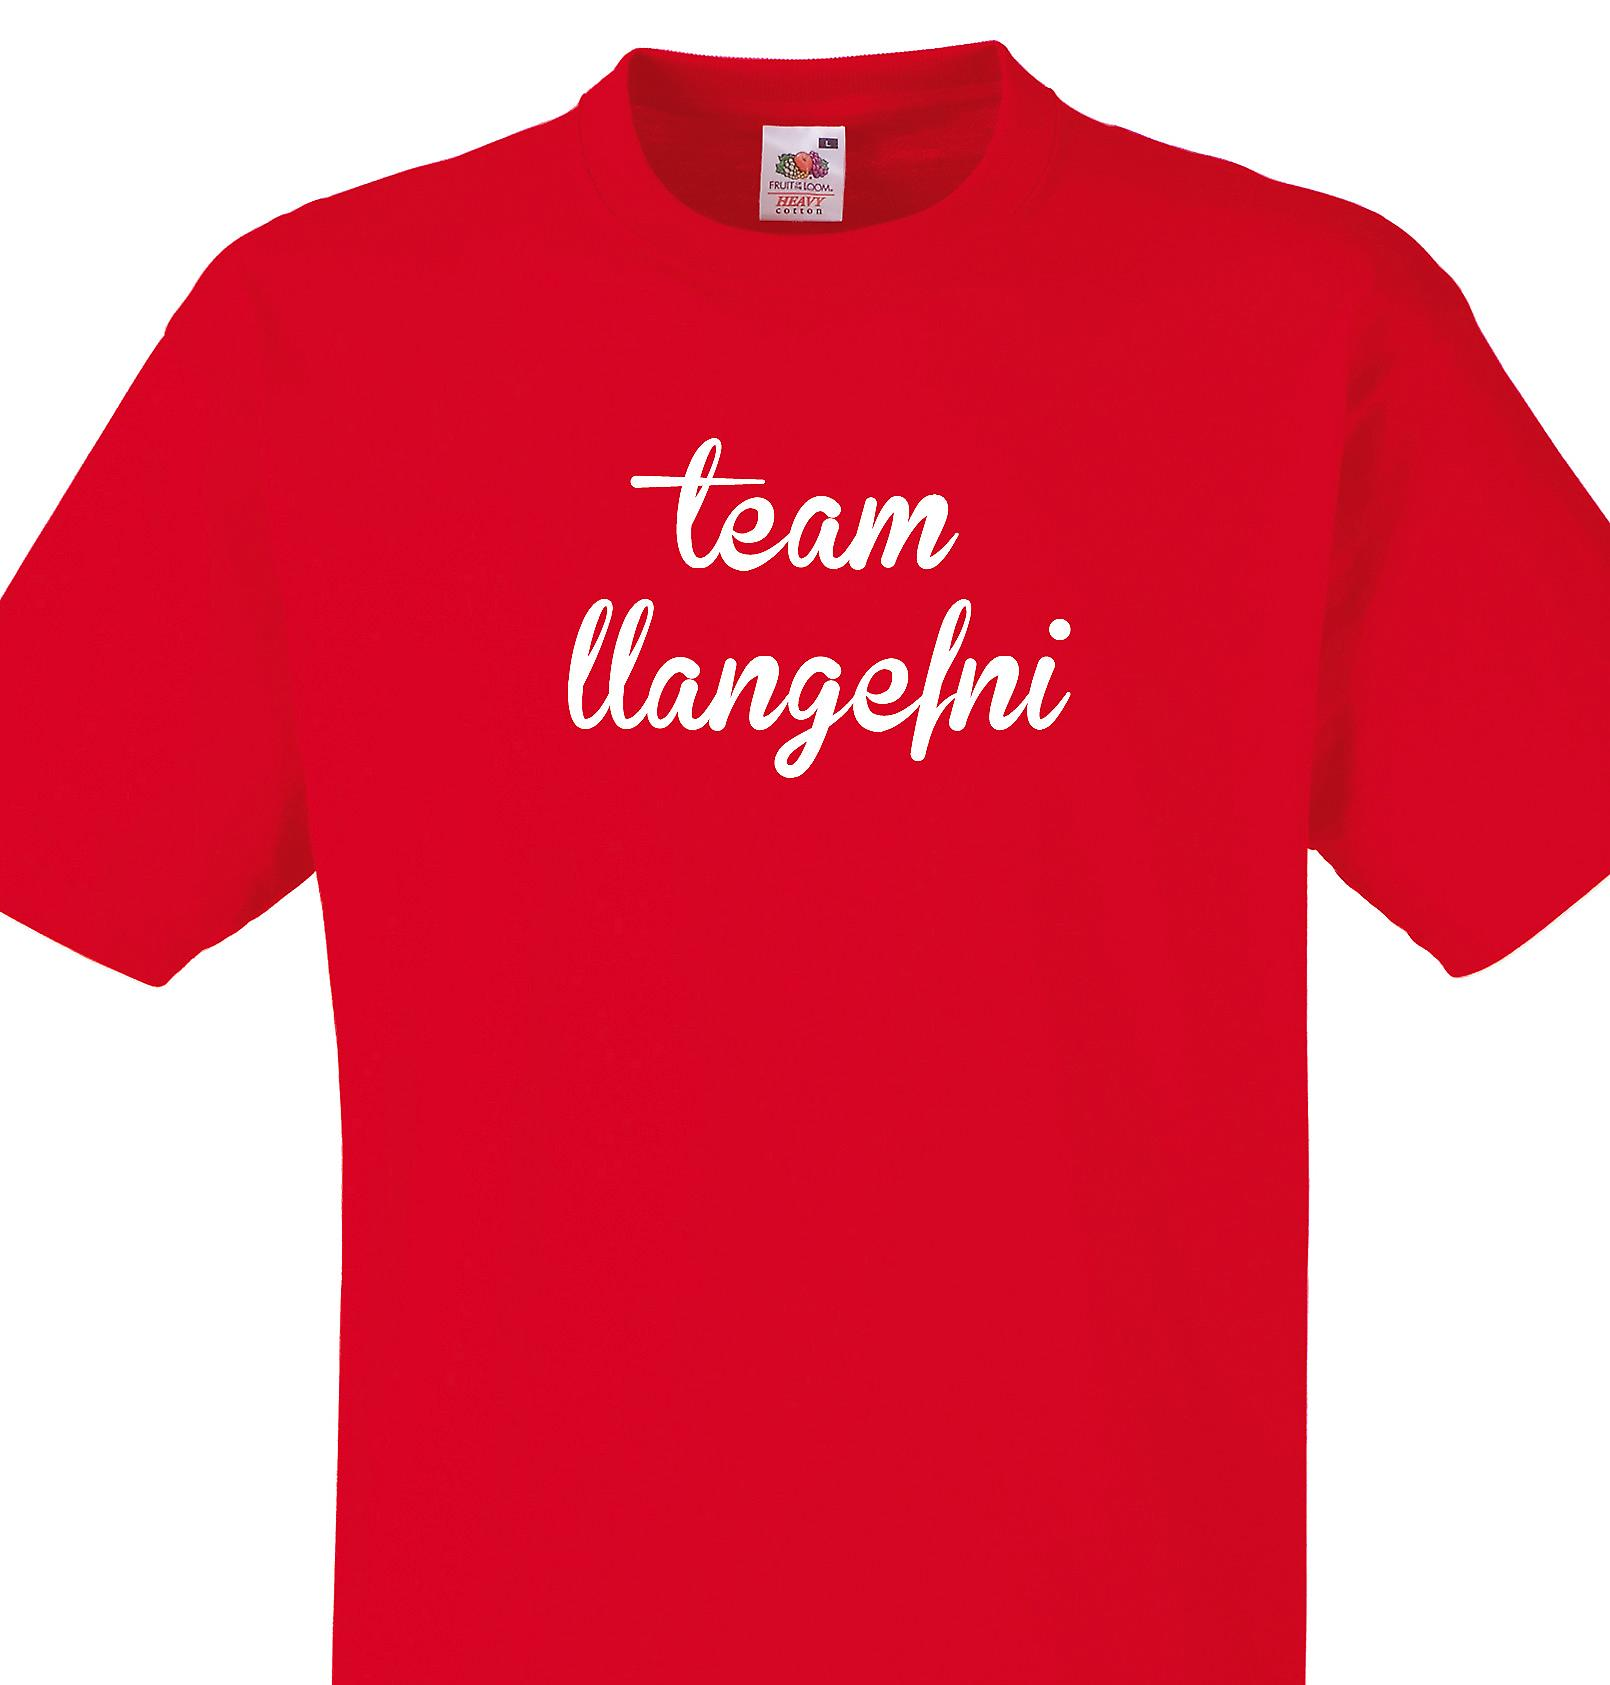 Team Llangefni Red T shirt